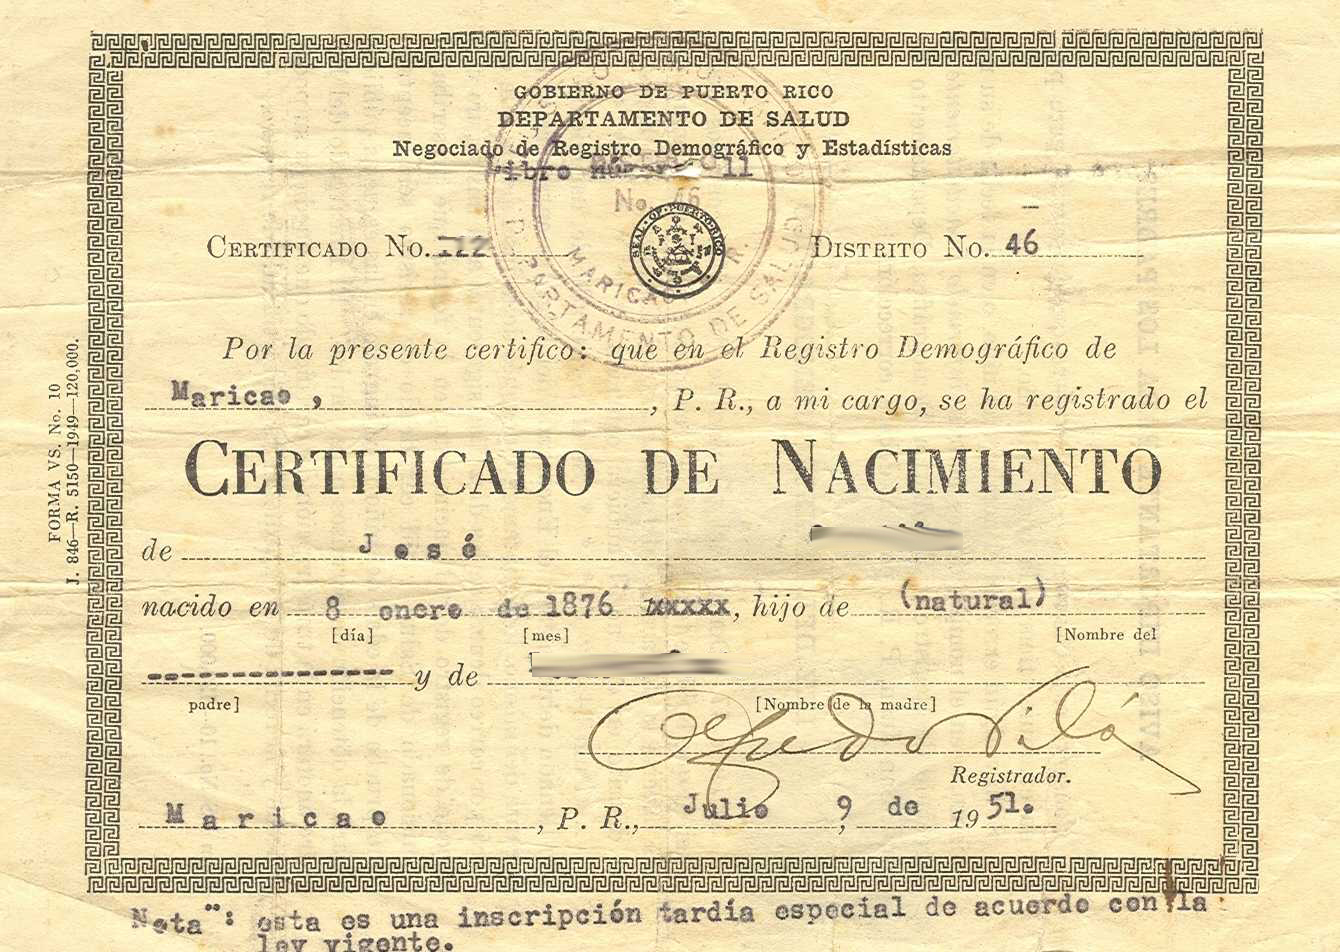 Puerto rico has a birth certificate mess que fregados what a mess for those born in puerto rico i first read this in time magazine and now came across it in the daily news aiddatafo Gallery